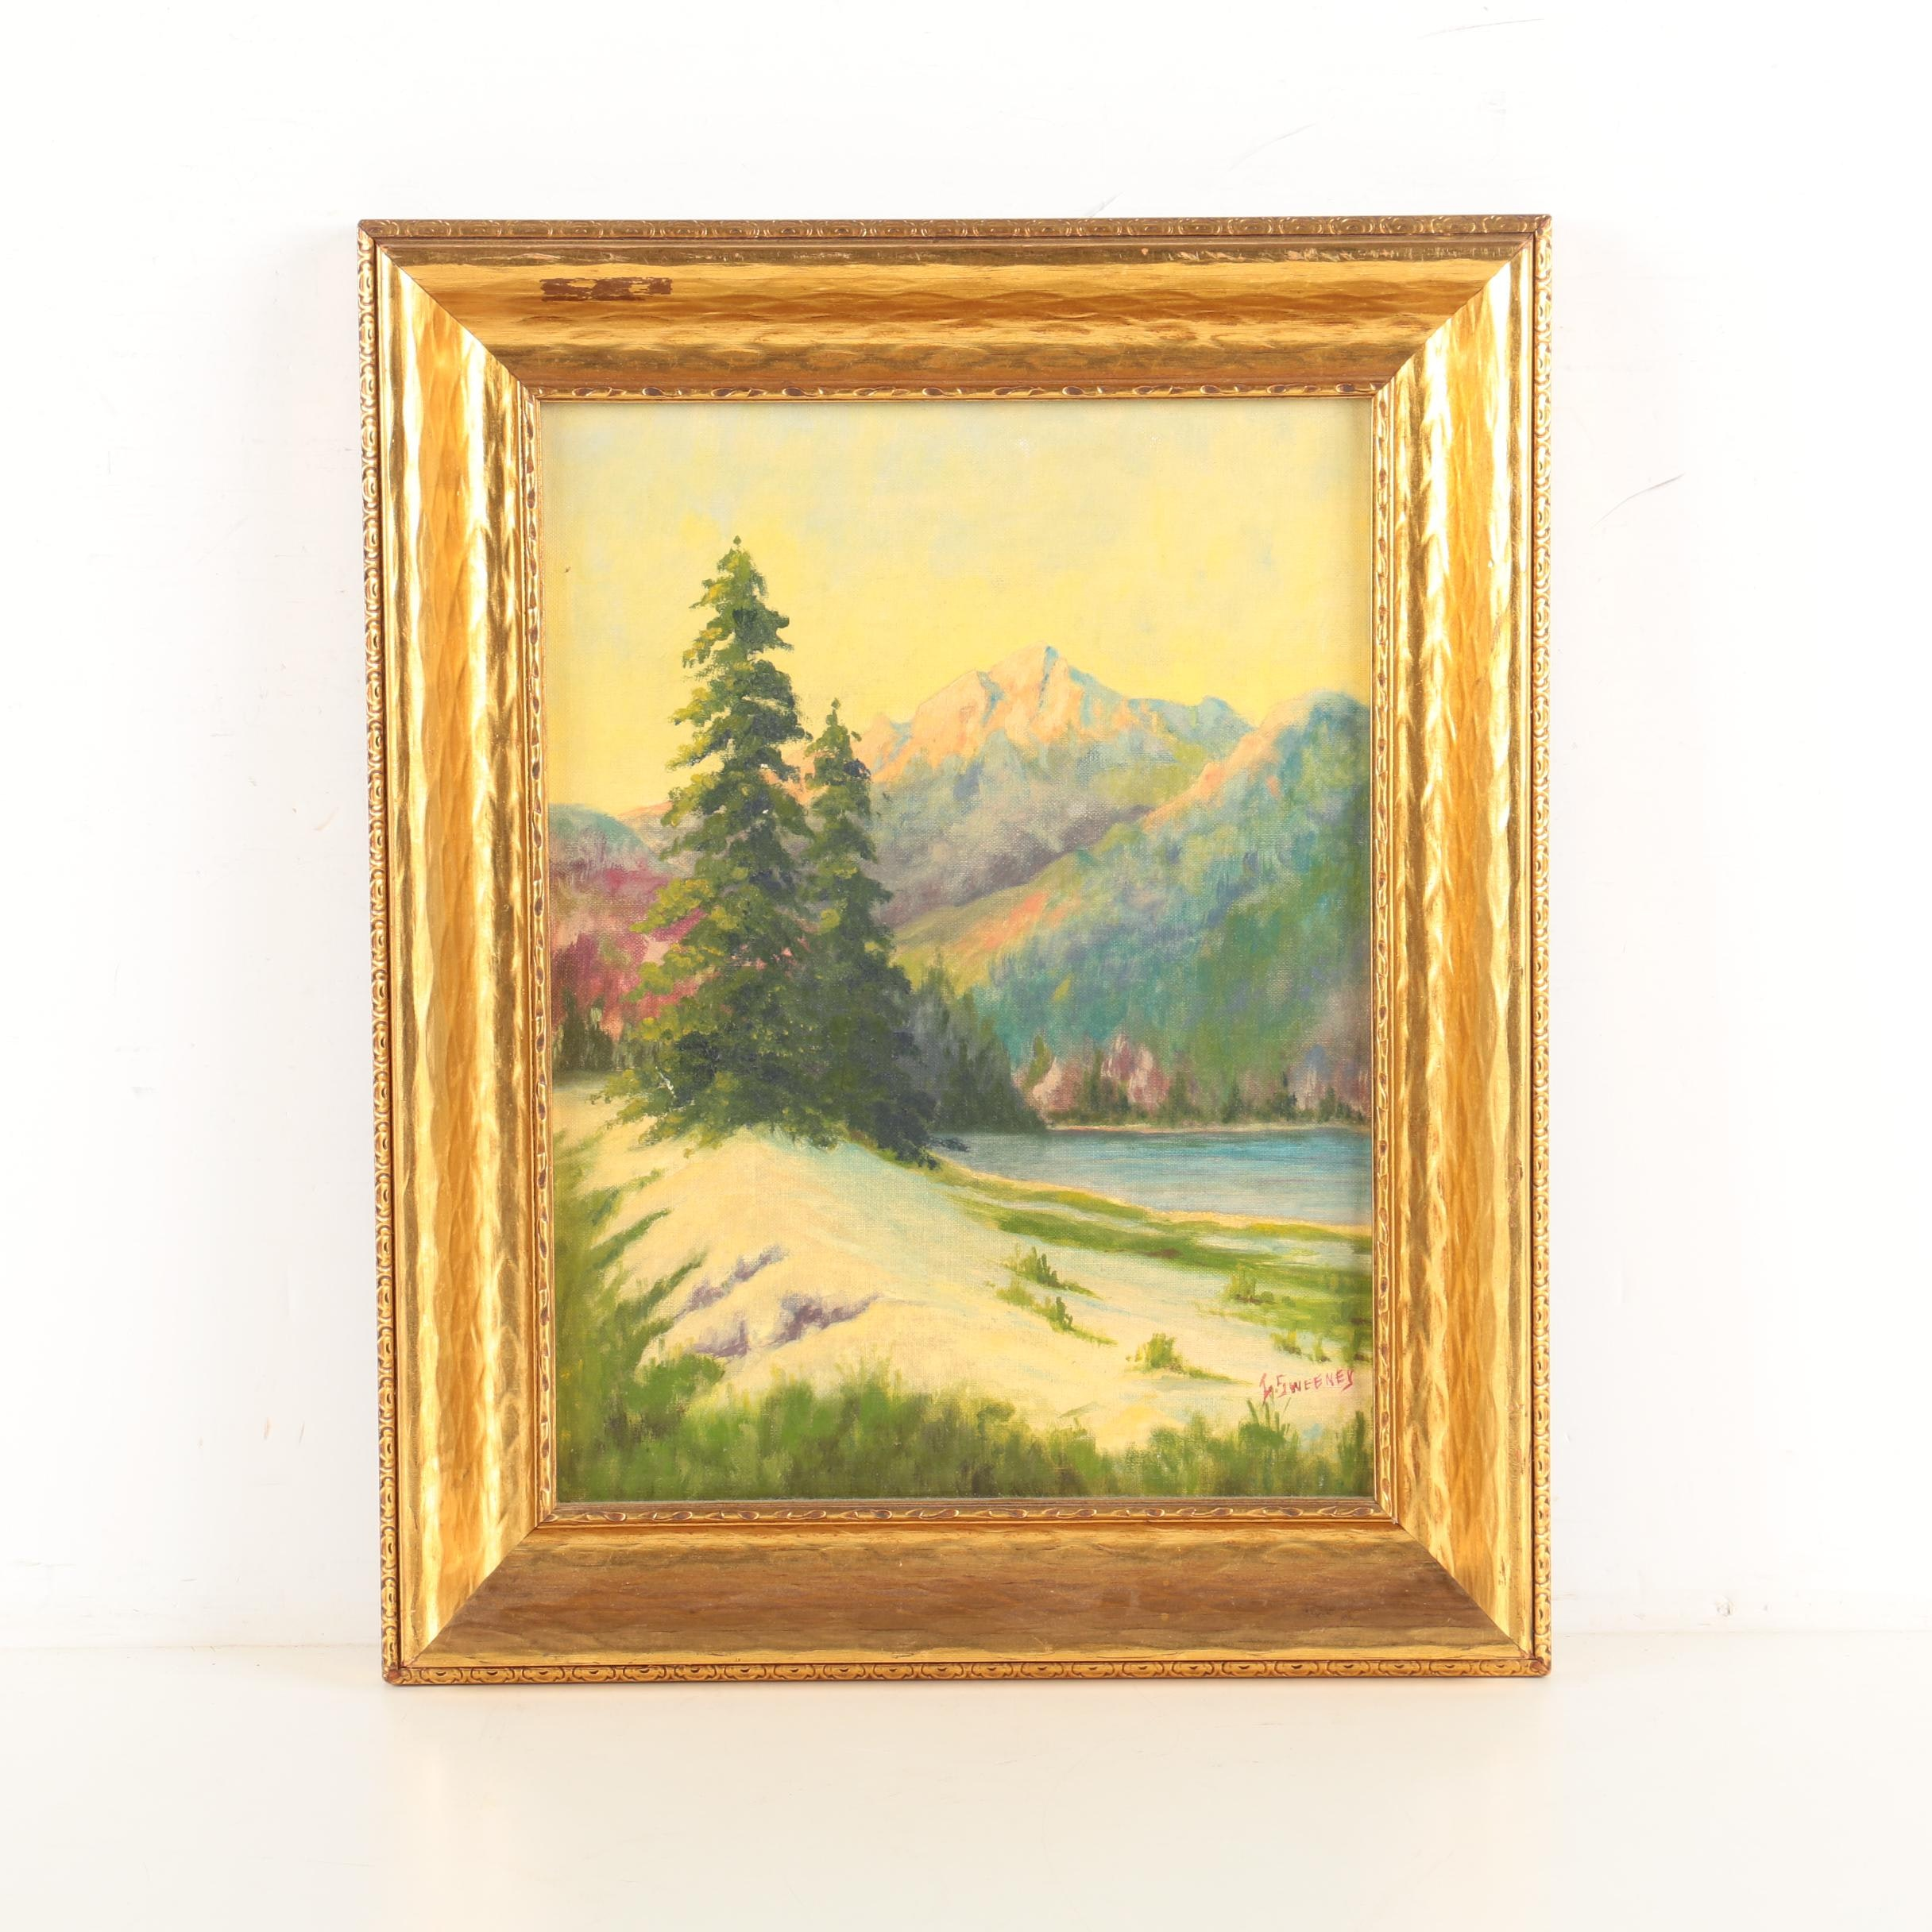 I. Sweeney Oil Painting on Canvas Board of Lake Louise in the Canadian Rockies